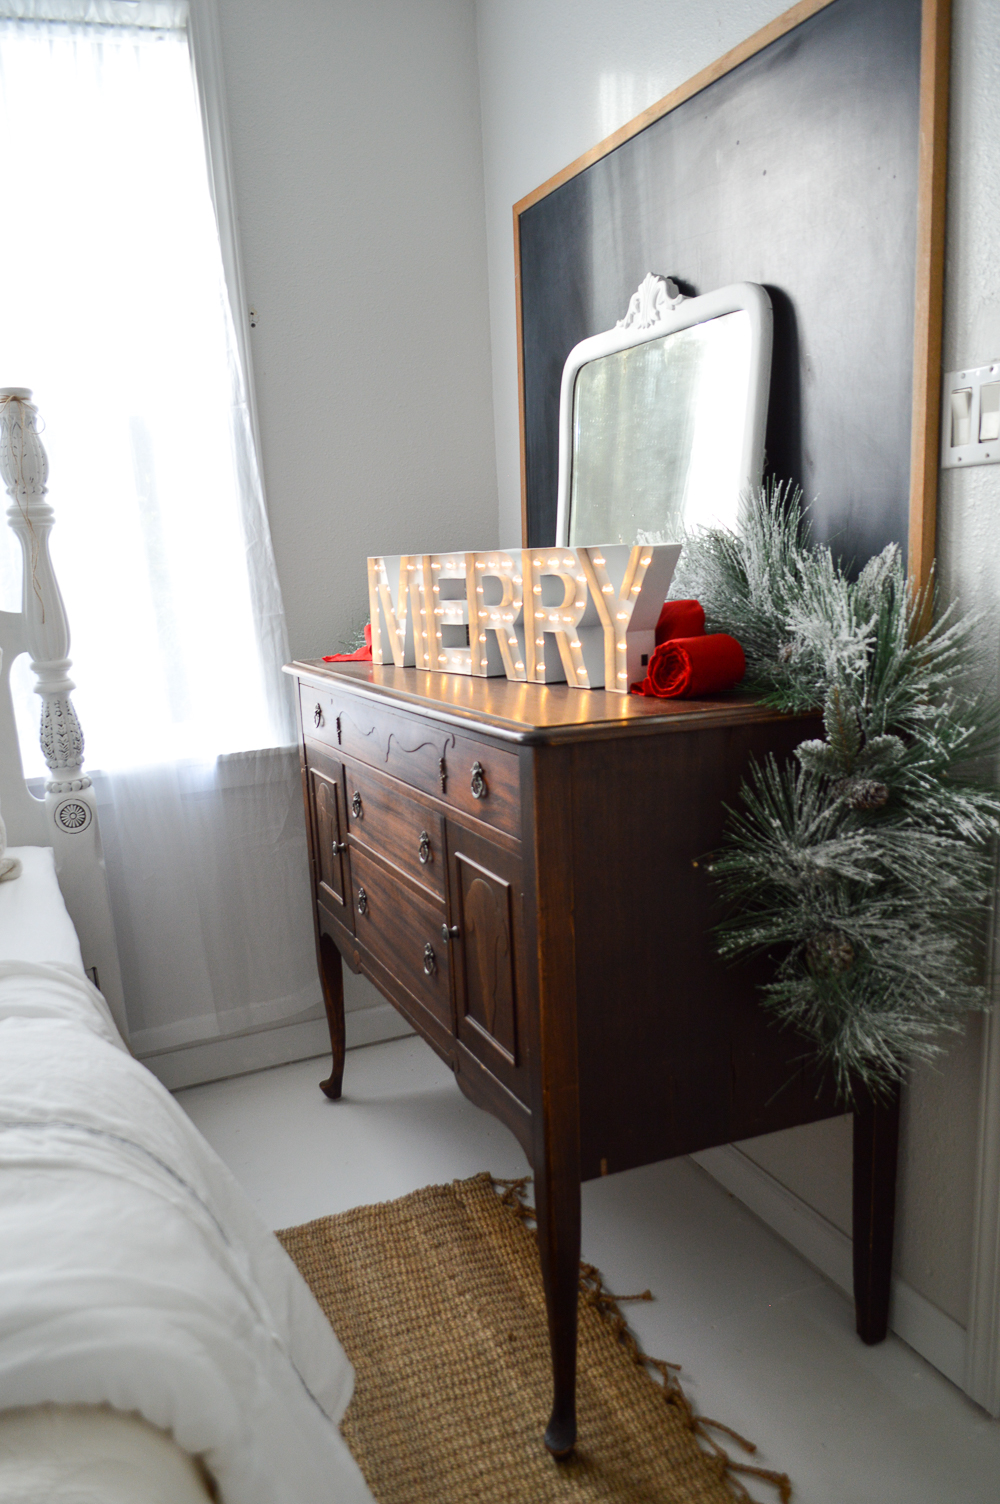 Merry Christmas Guest Bedroom at The Little Cottage foxhollowcottage.com Love the layered chalk board and vintage mirror on this old wood buffet